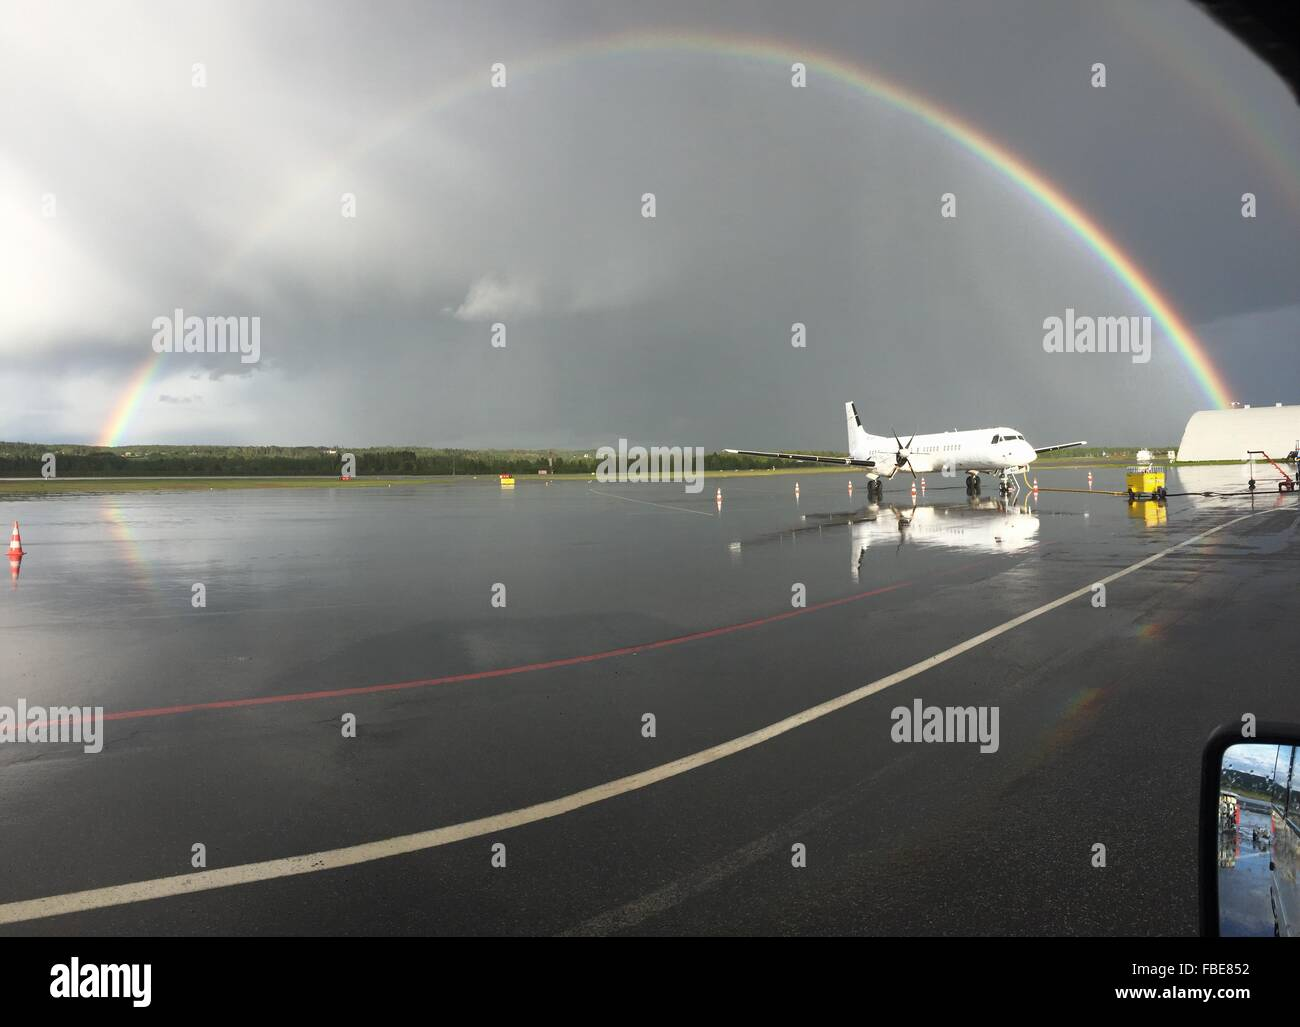 View Of Rainbow Over Calm Sea - Stock Image